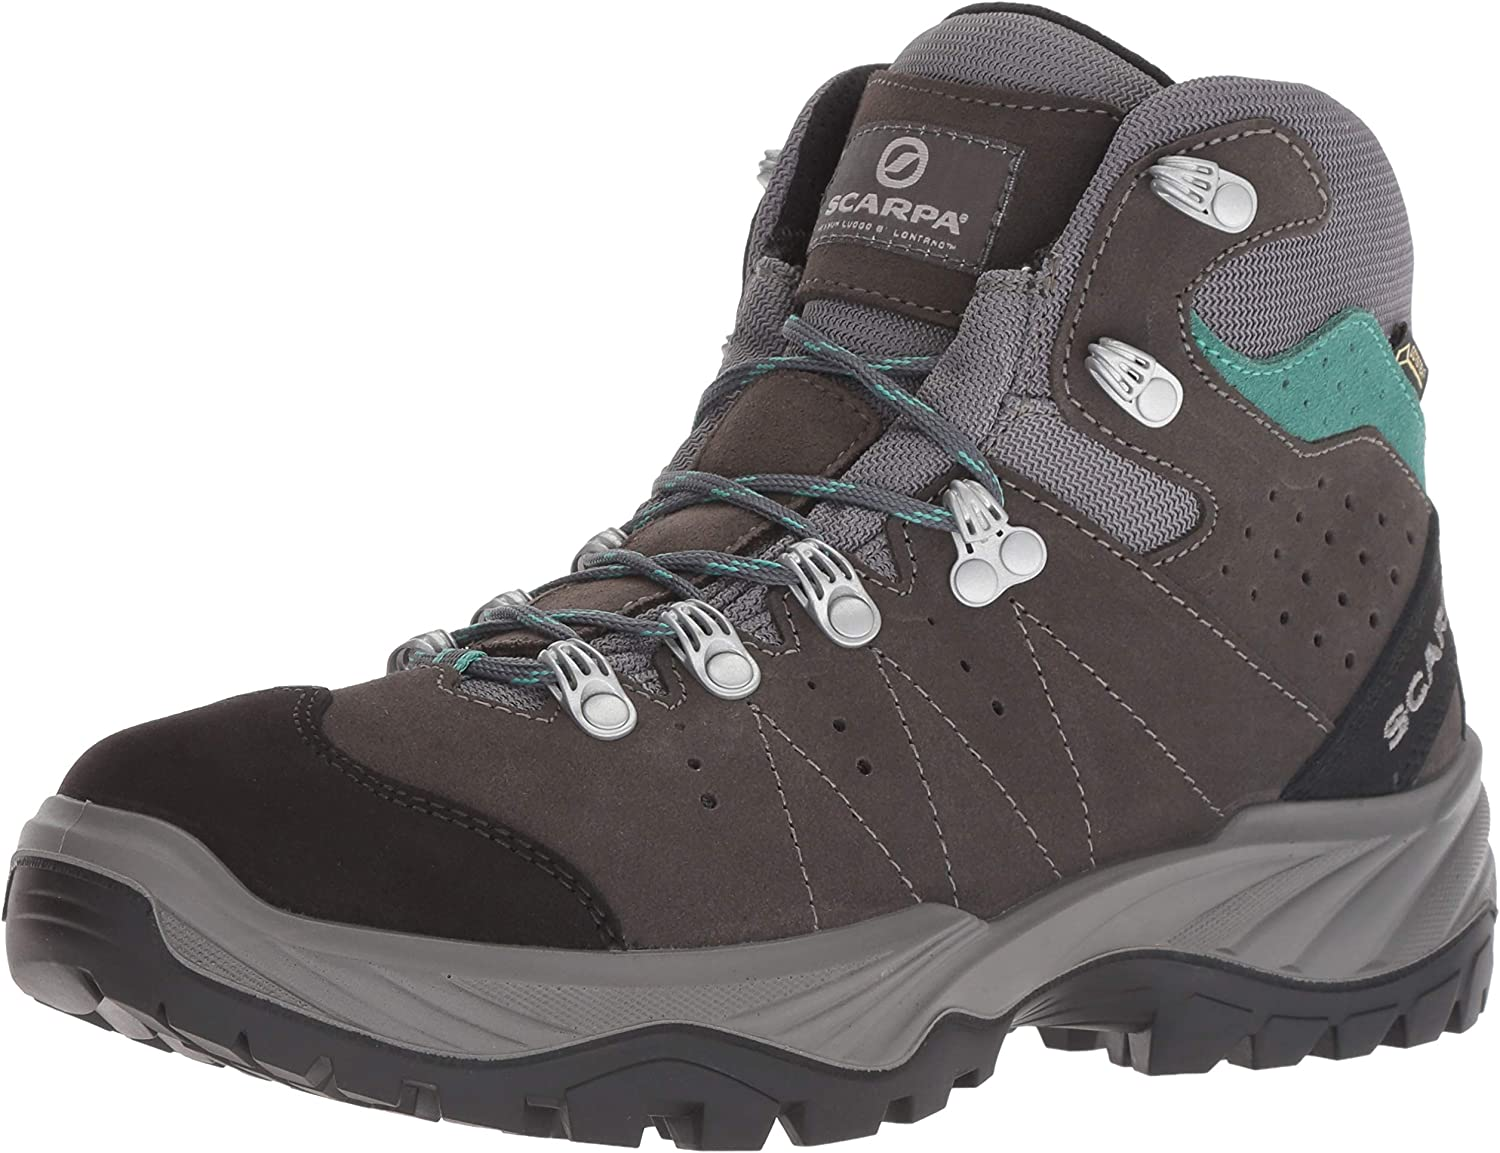 Scarpa Womens Mistral GTX Walking shoes